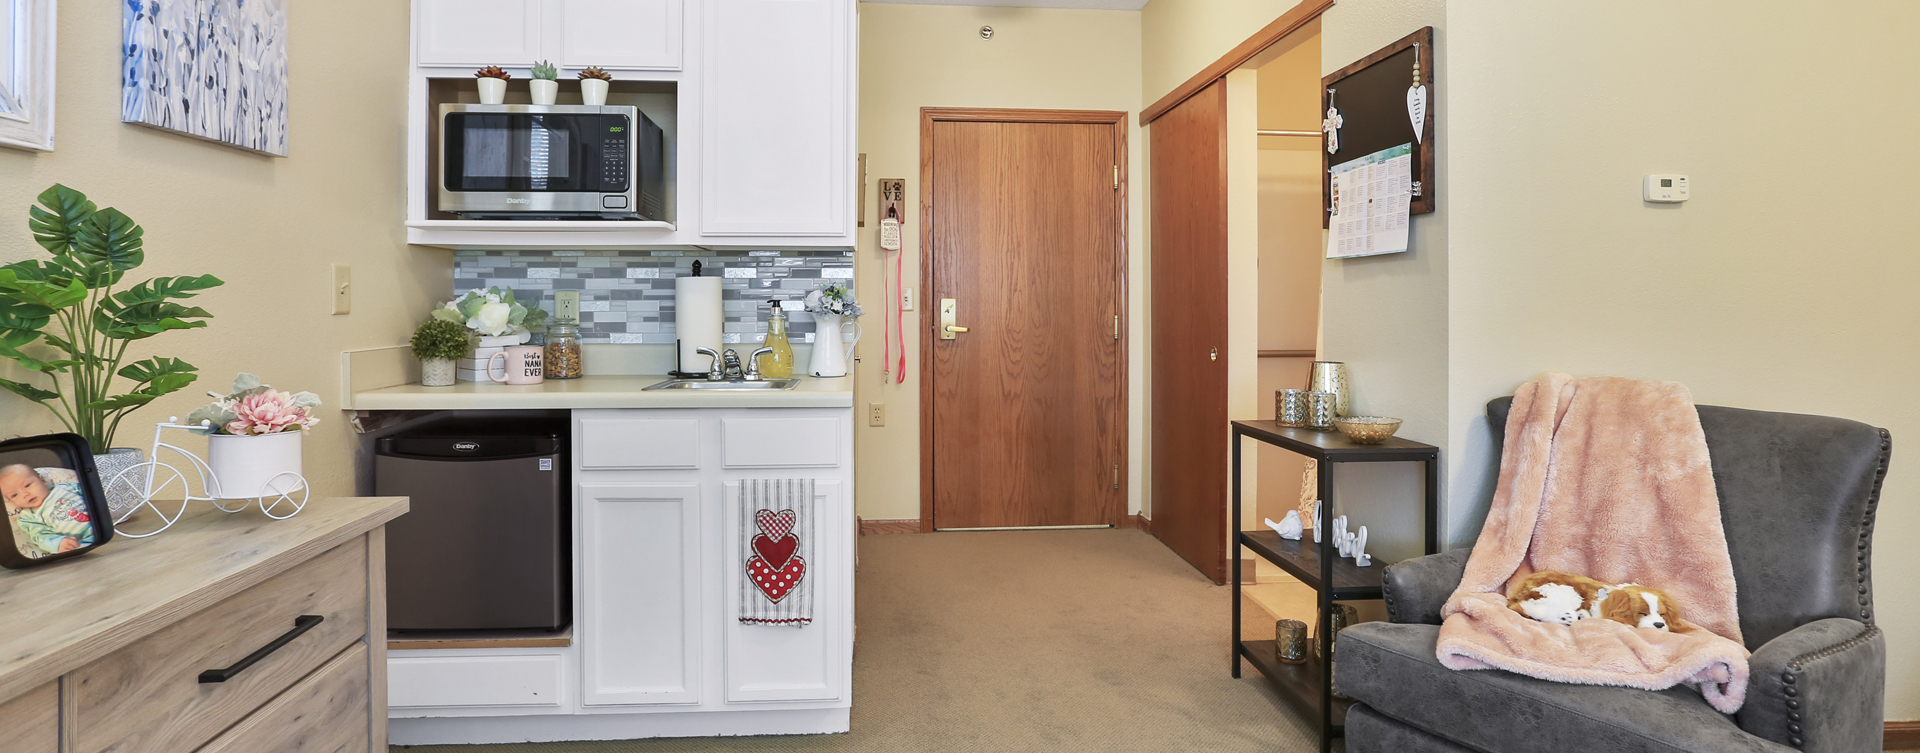 Enjoy senior friendly amenities, personal climate control and security in an apartment at Bickford of Champaign